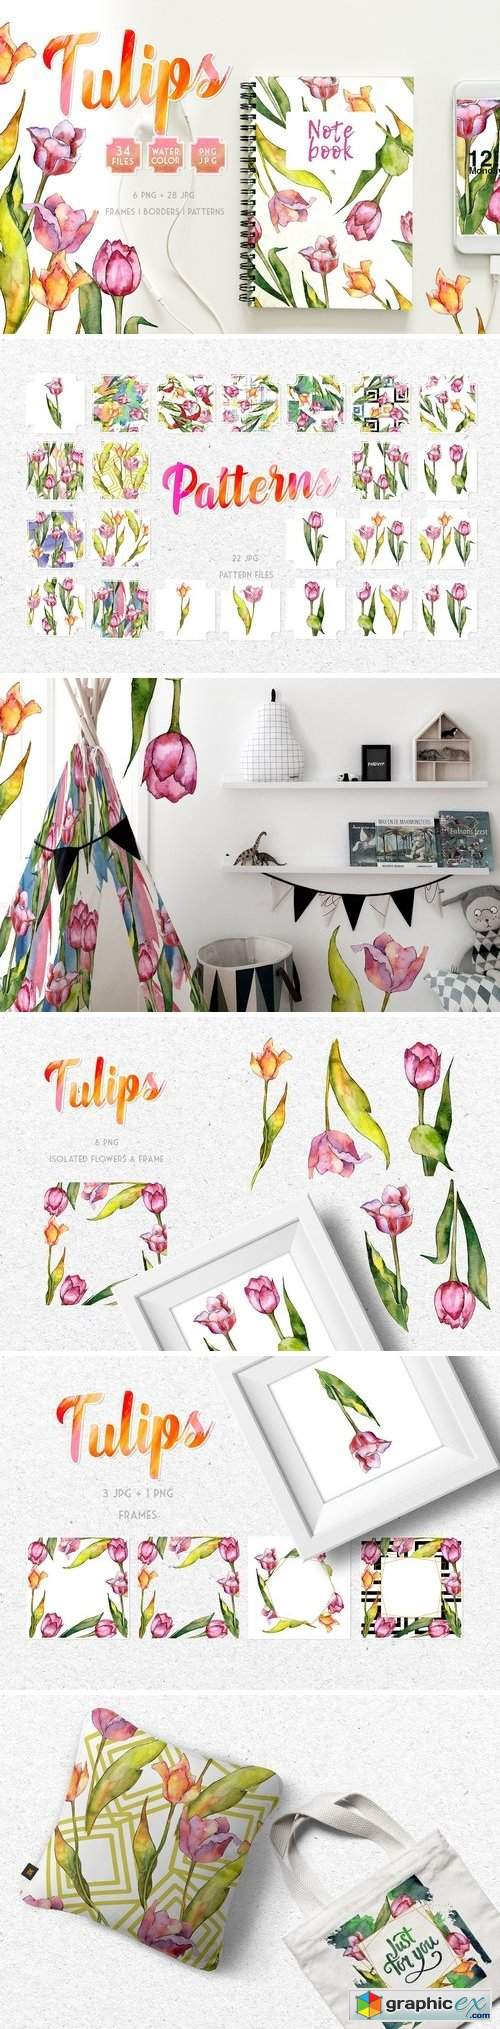 Tulips for Love Watercolor png